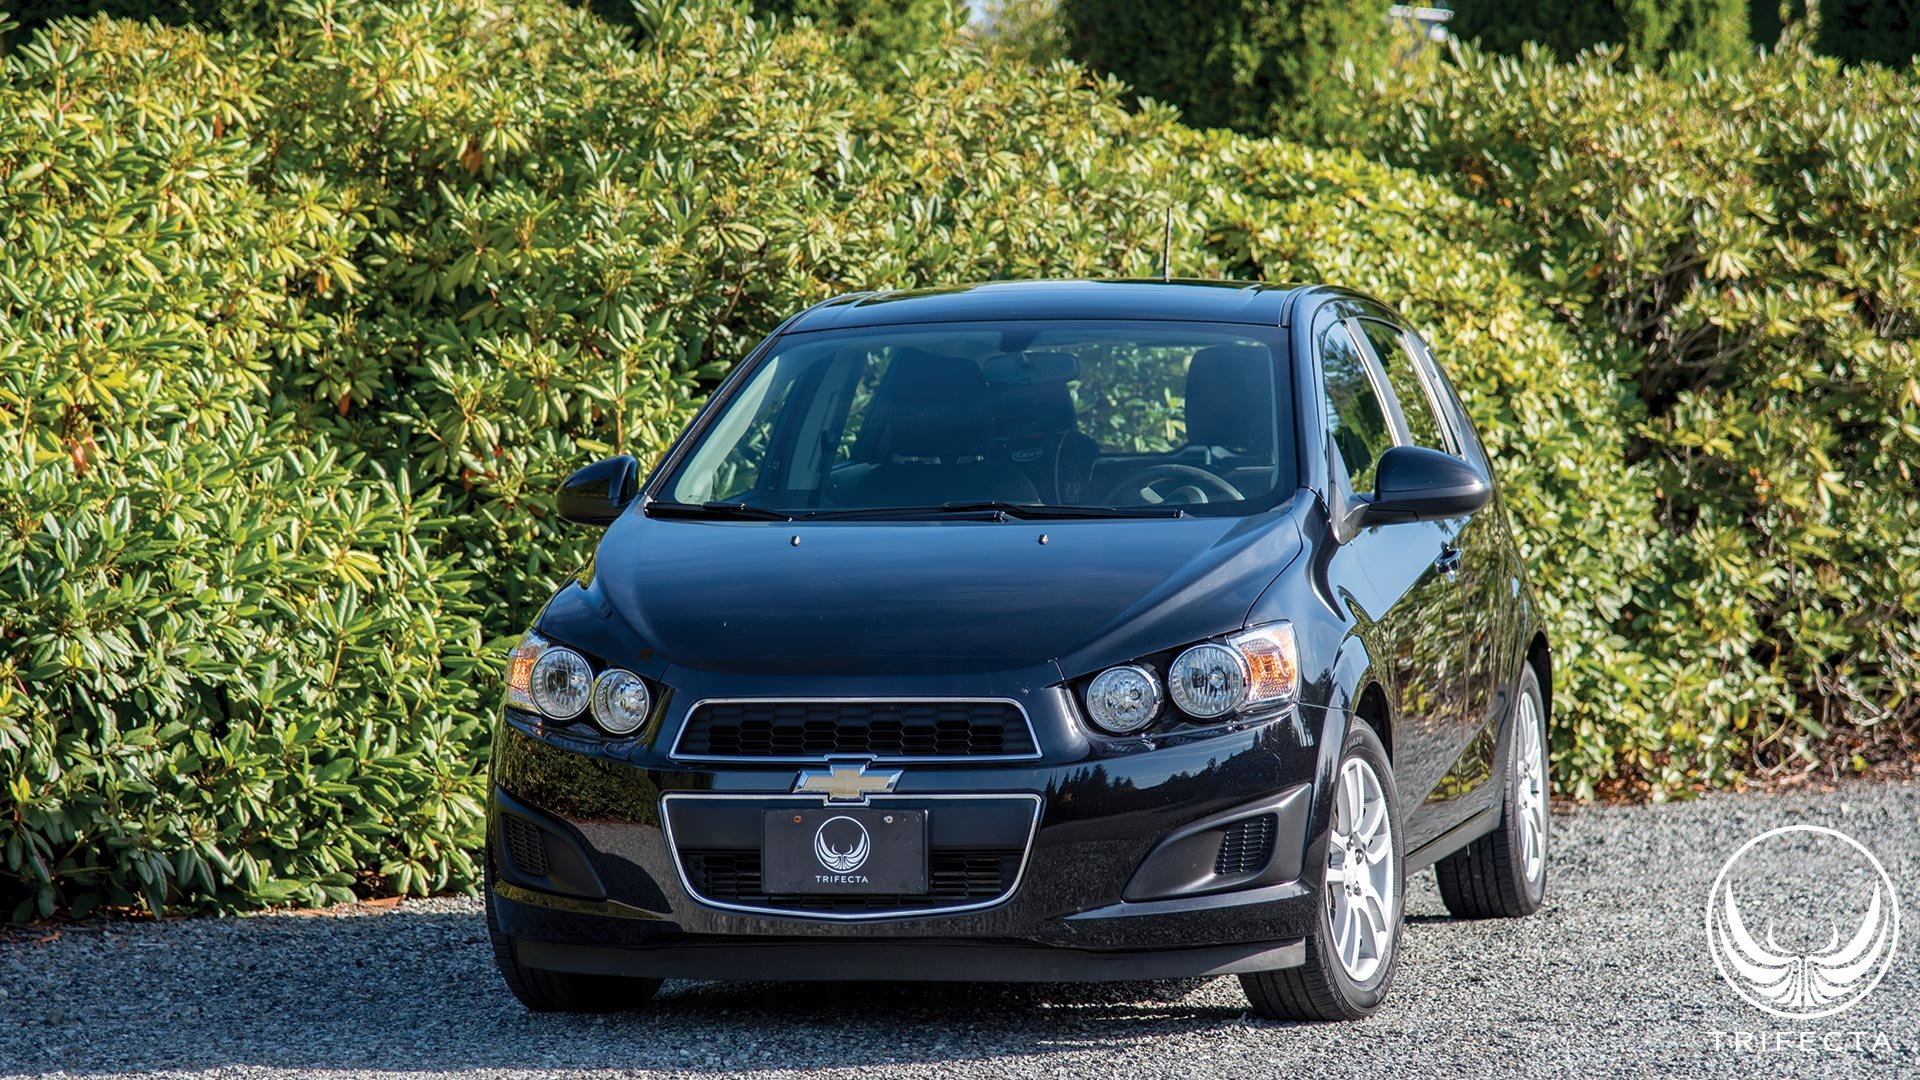 Product Review: 2012--2018+ Chevrolet Sonic - 1.4L Turbo Advantage